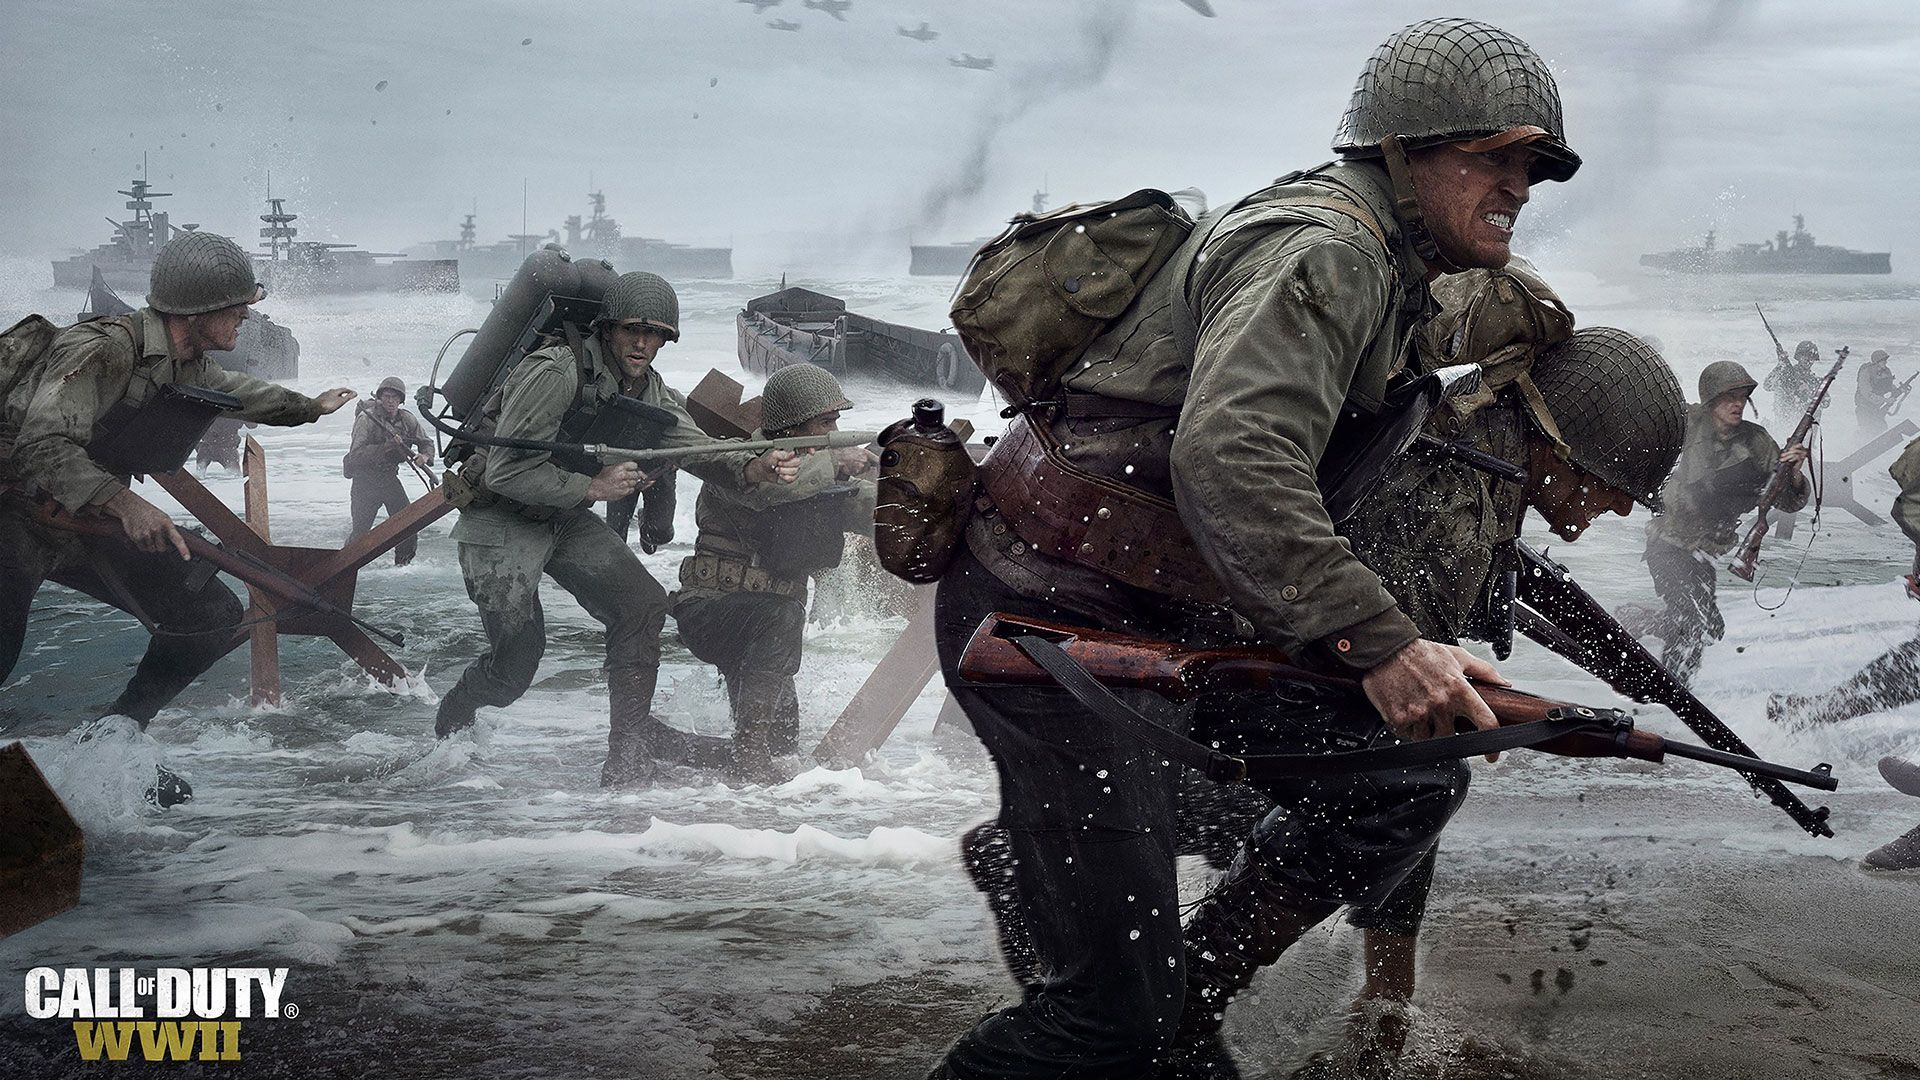 Call Of Duty Wwii Wallpapers In Ultra Hd 4k Call Of Duty Modern Warfare Background Images Hd